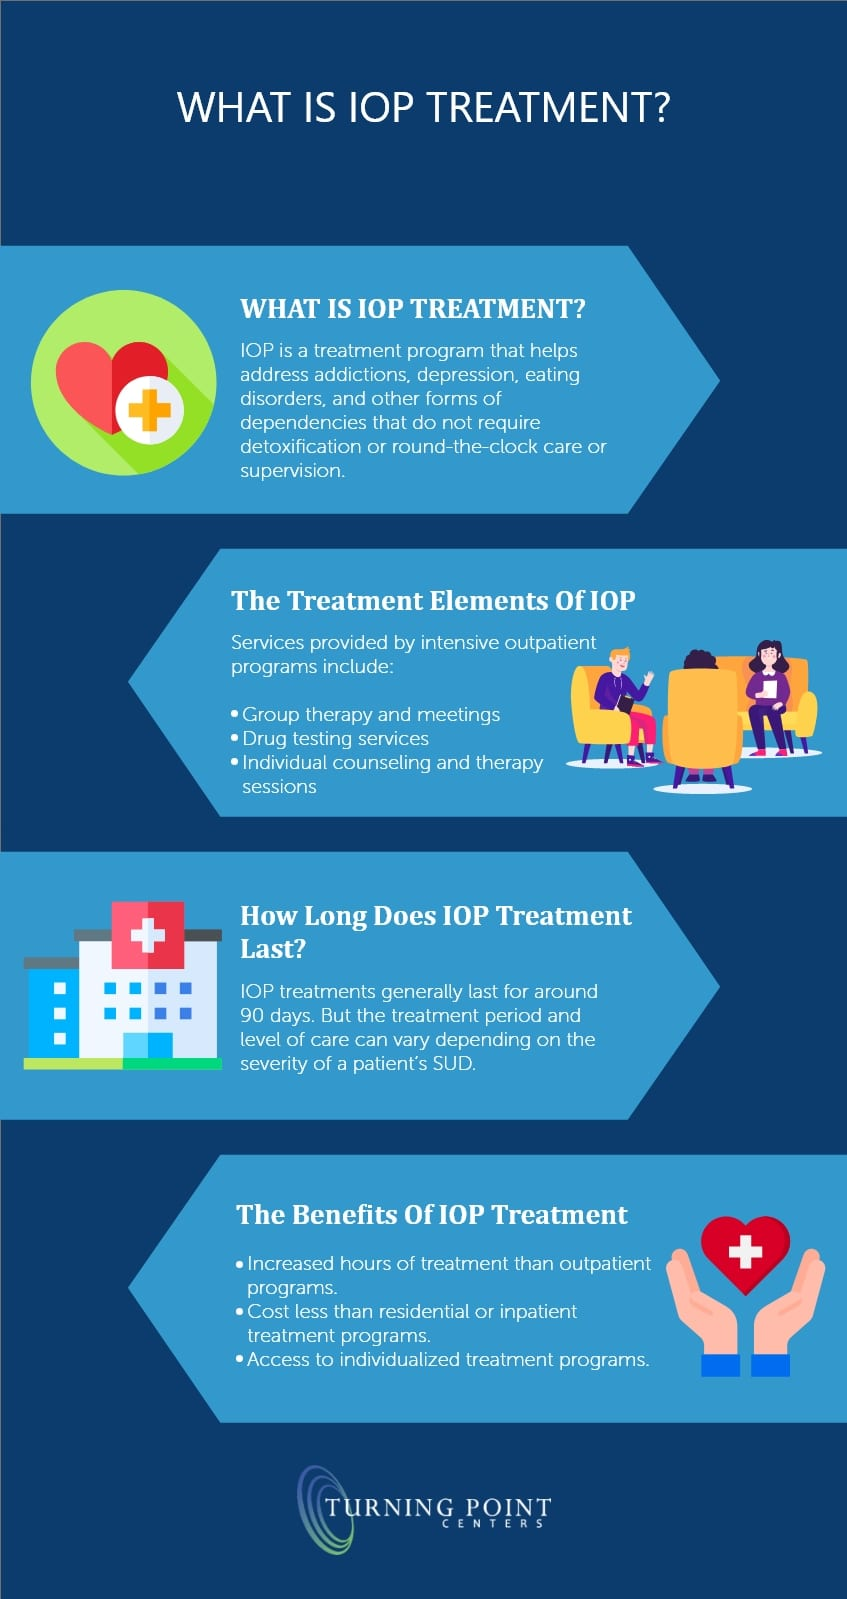 What is IOP Treatment